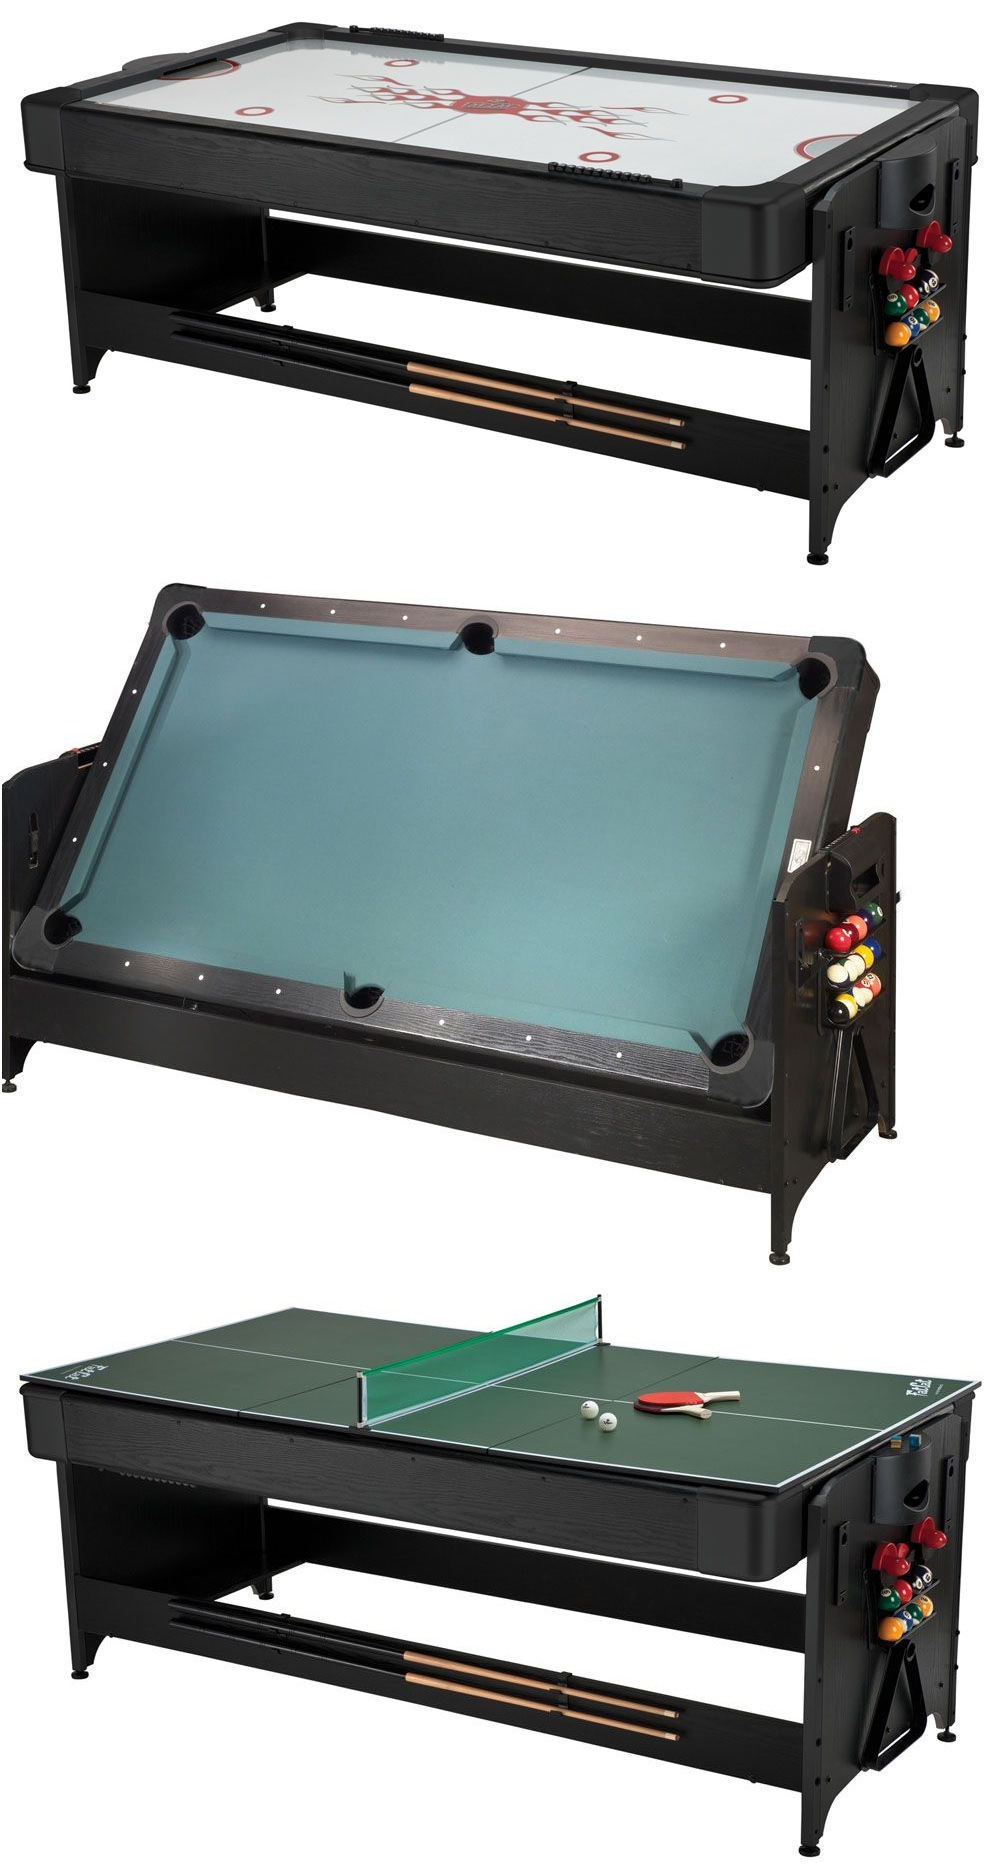 The Pockey 3 In 1 Game Table Is An Air Hockey, Table Tennis, And Billiards  Table All In One. Image Courtesy Game Tables Online.com